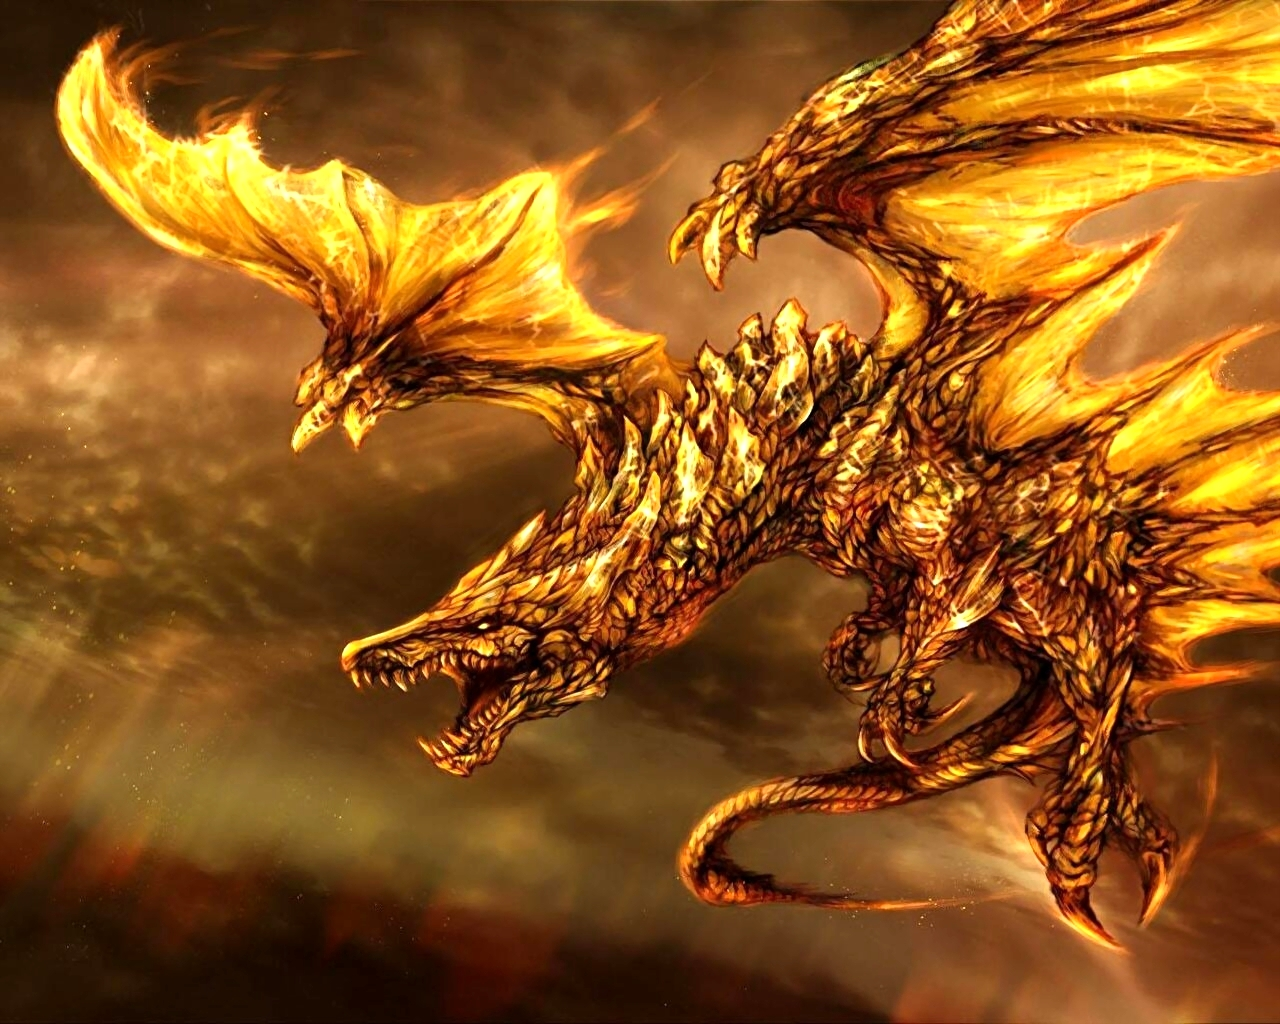 Fire Dragon Wallpaper 1920×1080